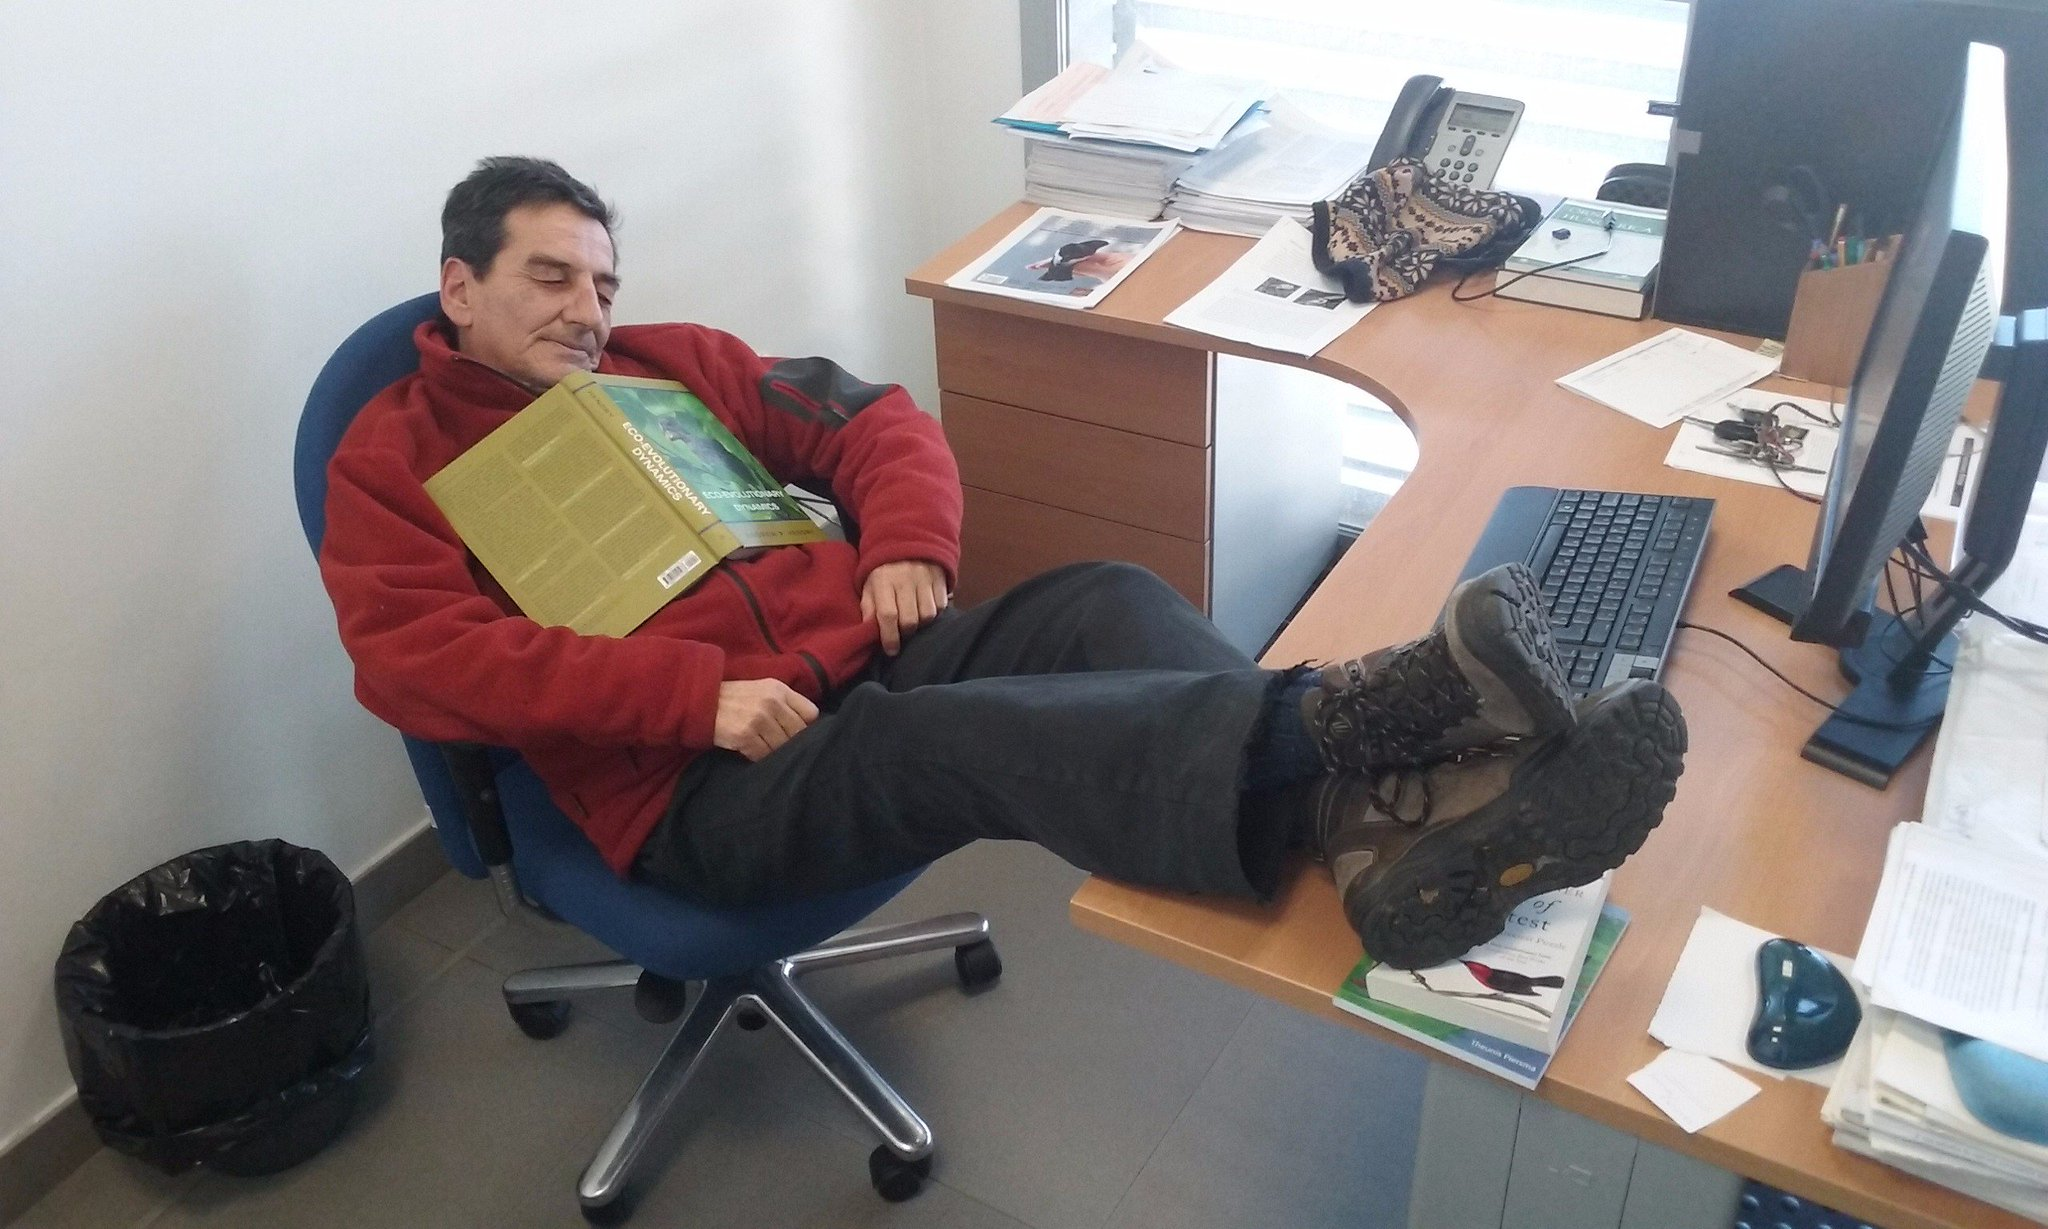 #PeopleWhoFellAsleepReadingMyBook Jaime Potti - while taking a break from pondering pied flycatchers. https://t.co/2znZEUbsuc